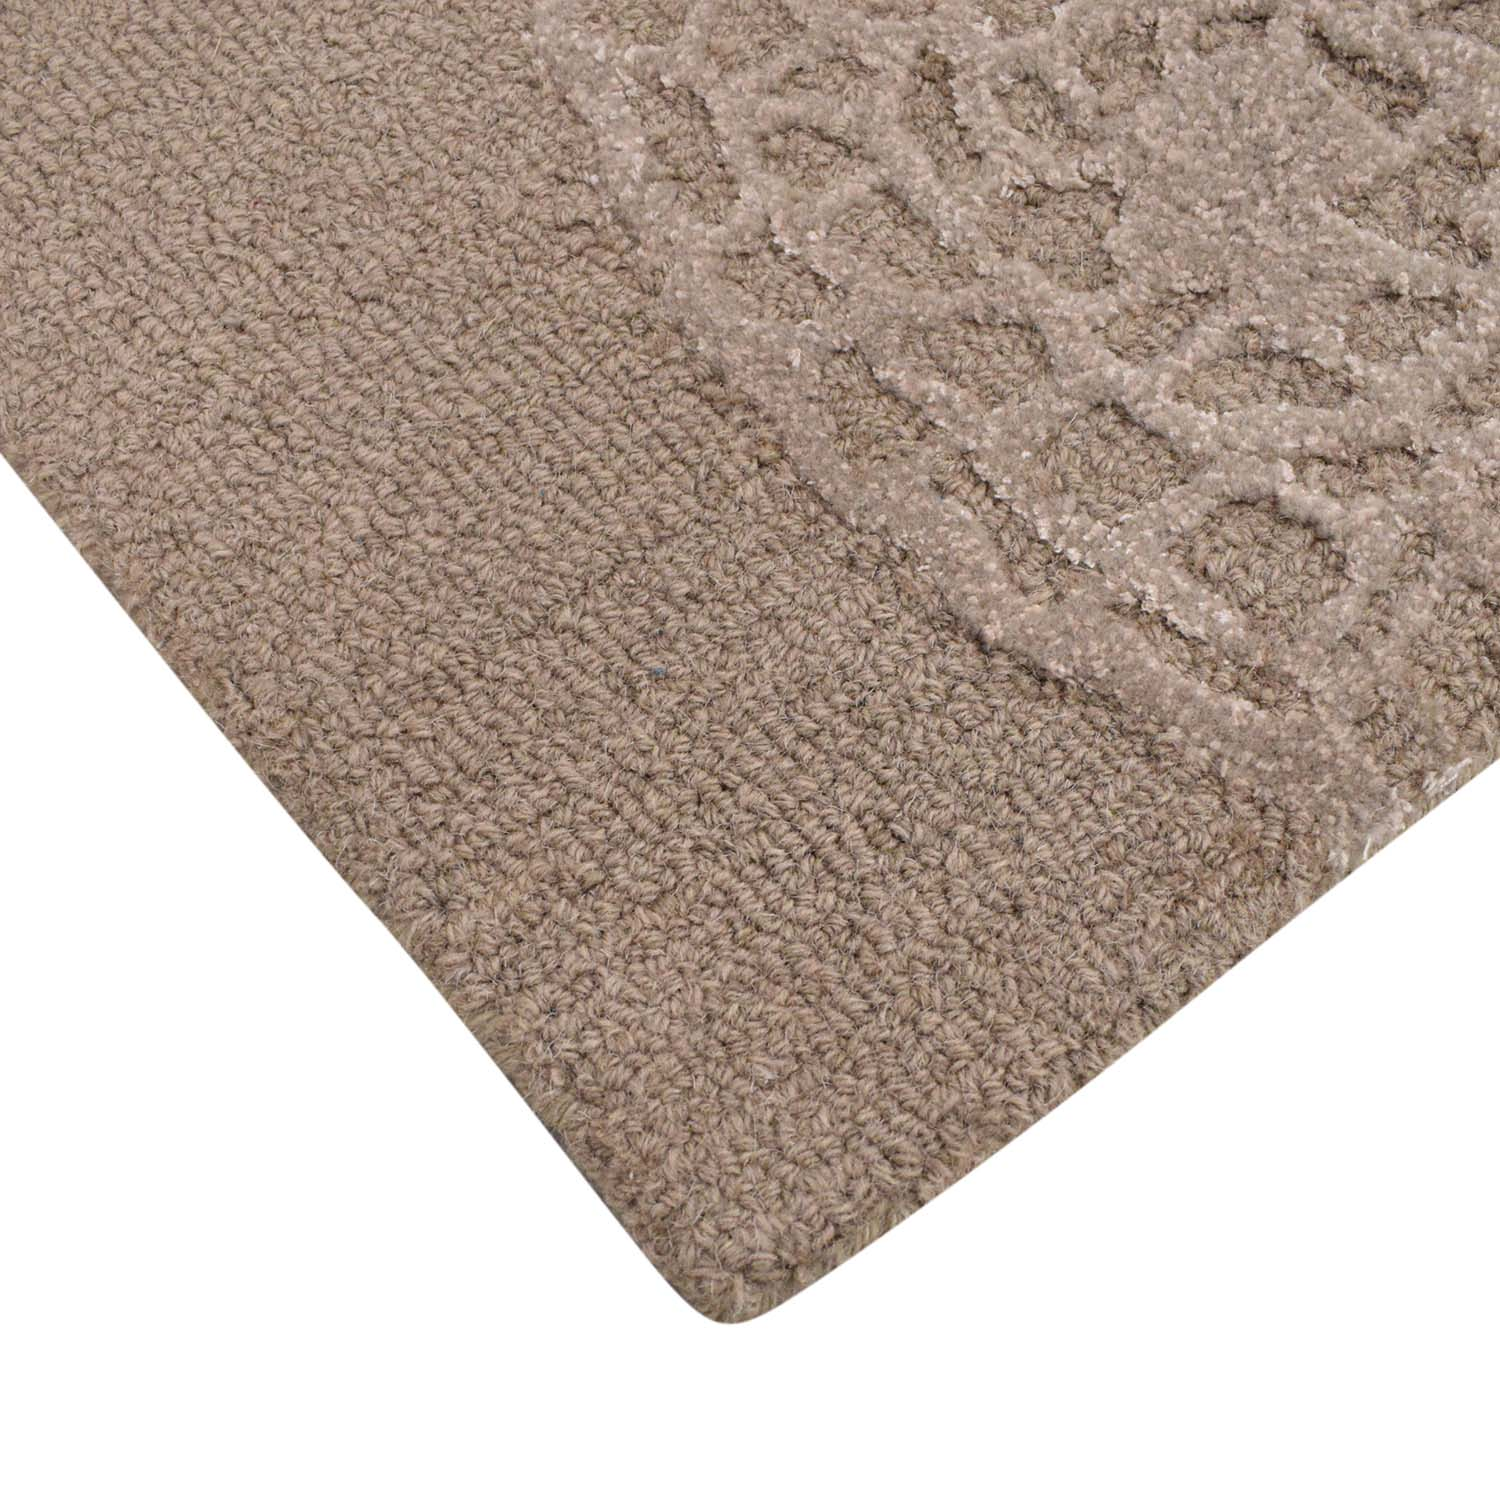 Wayfair Wayfair Rizzy Home Rug ma